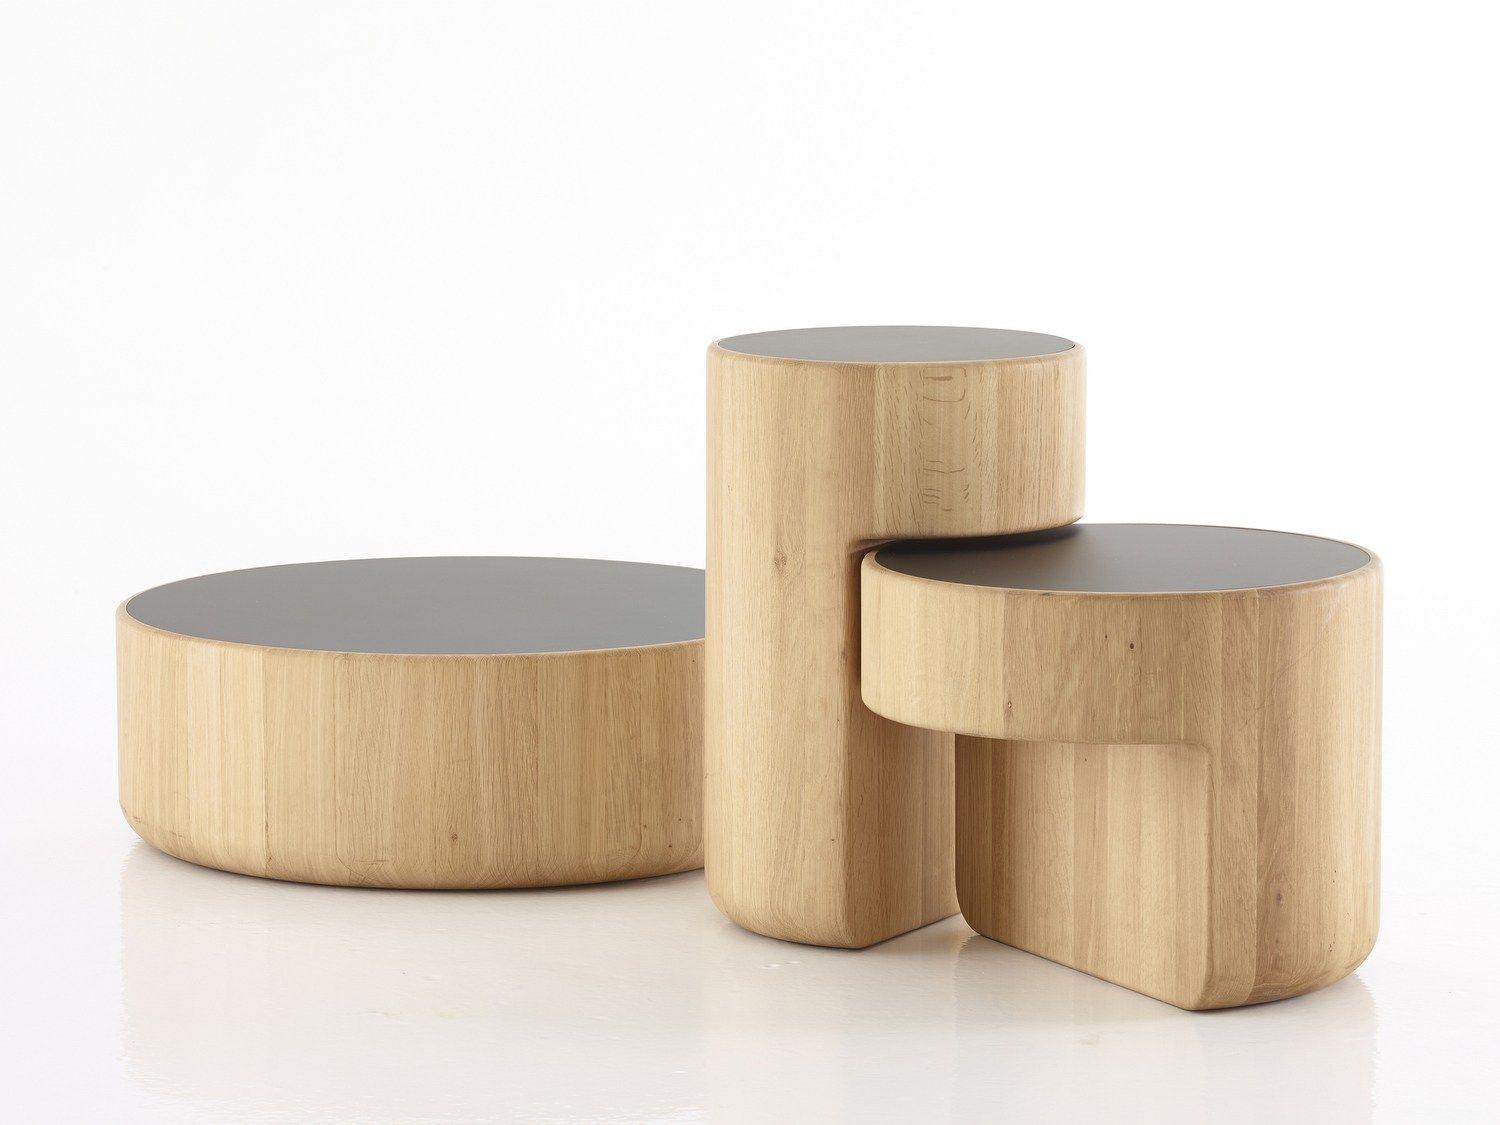 Couchtisch Walker Levels Coffee Table By Per Use Design Lucie Koldova Dan Yeffet